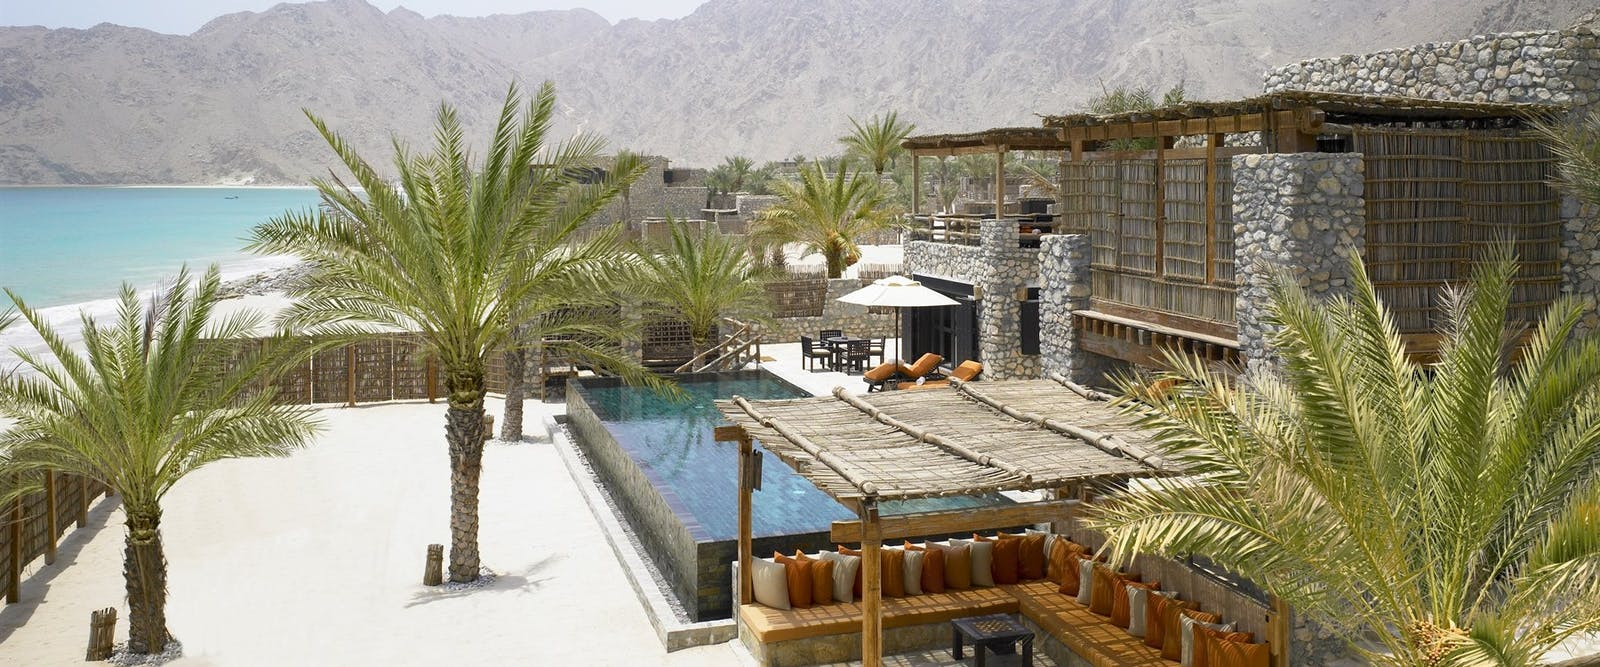 Exterior at Private Retreats and Reserve at Six Senses Zighy Bay